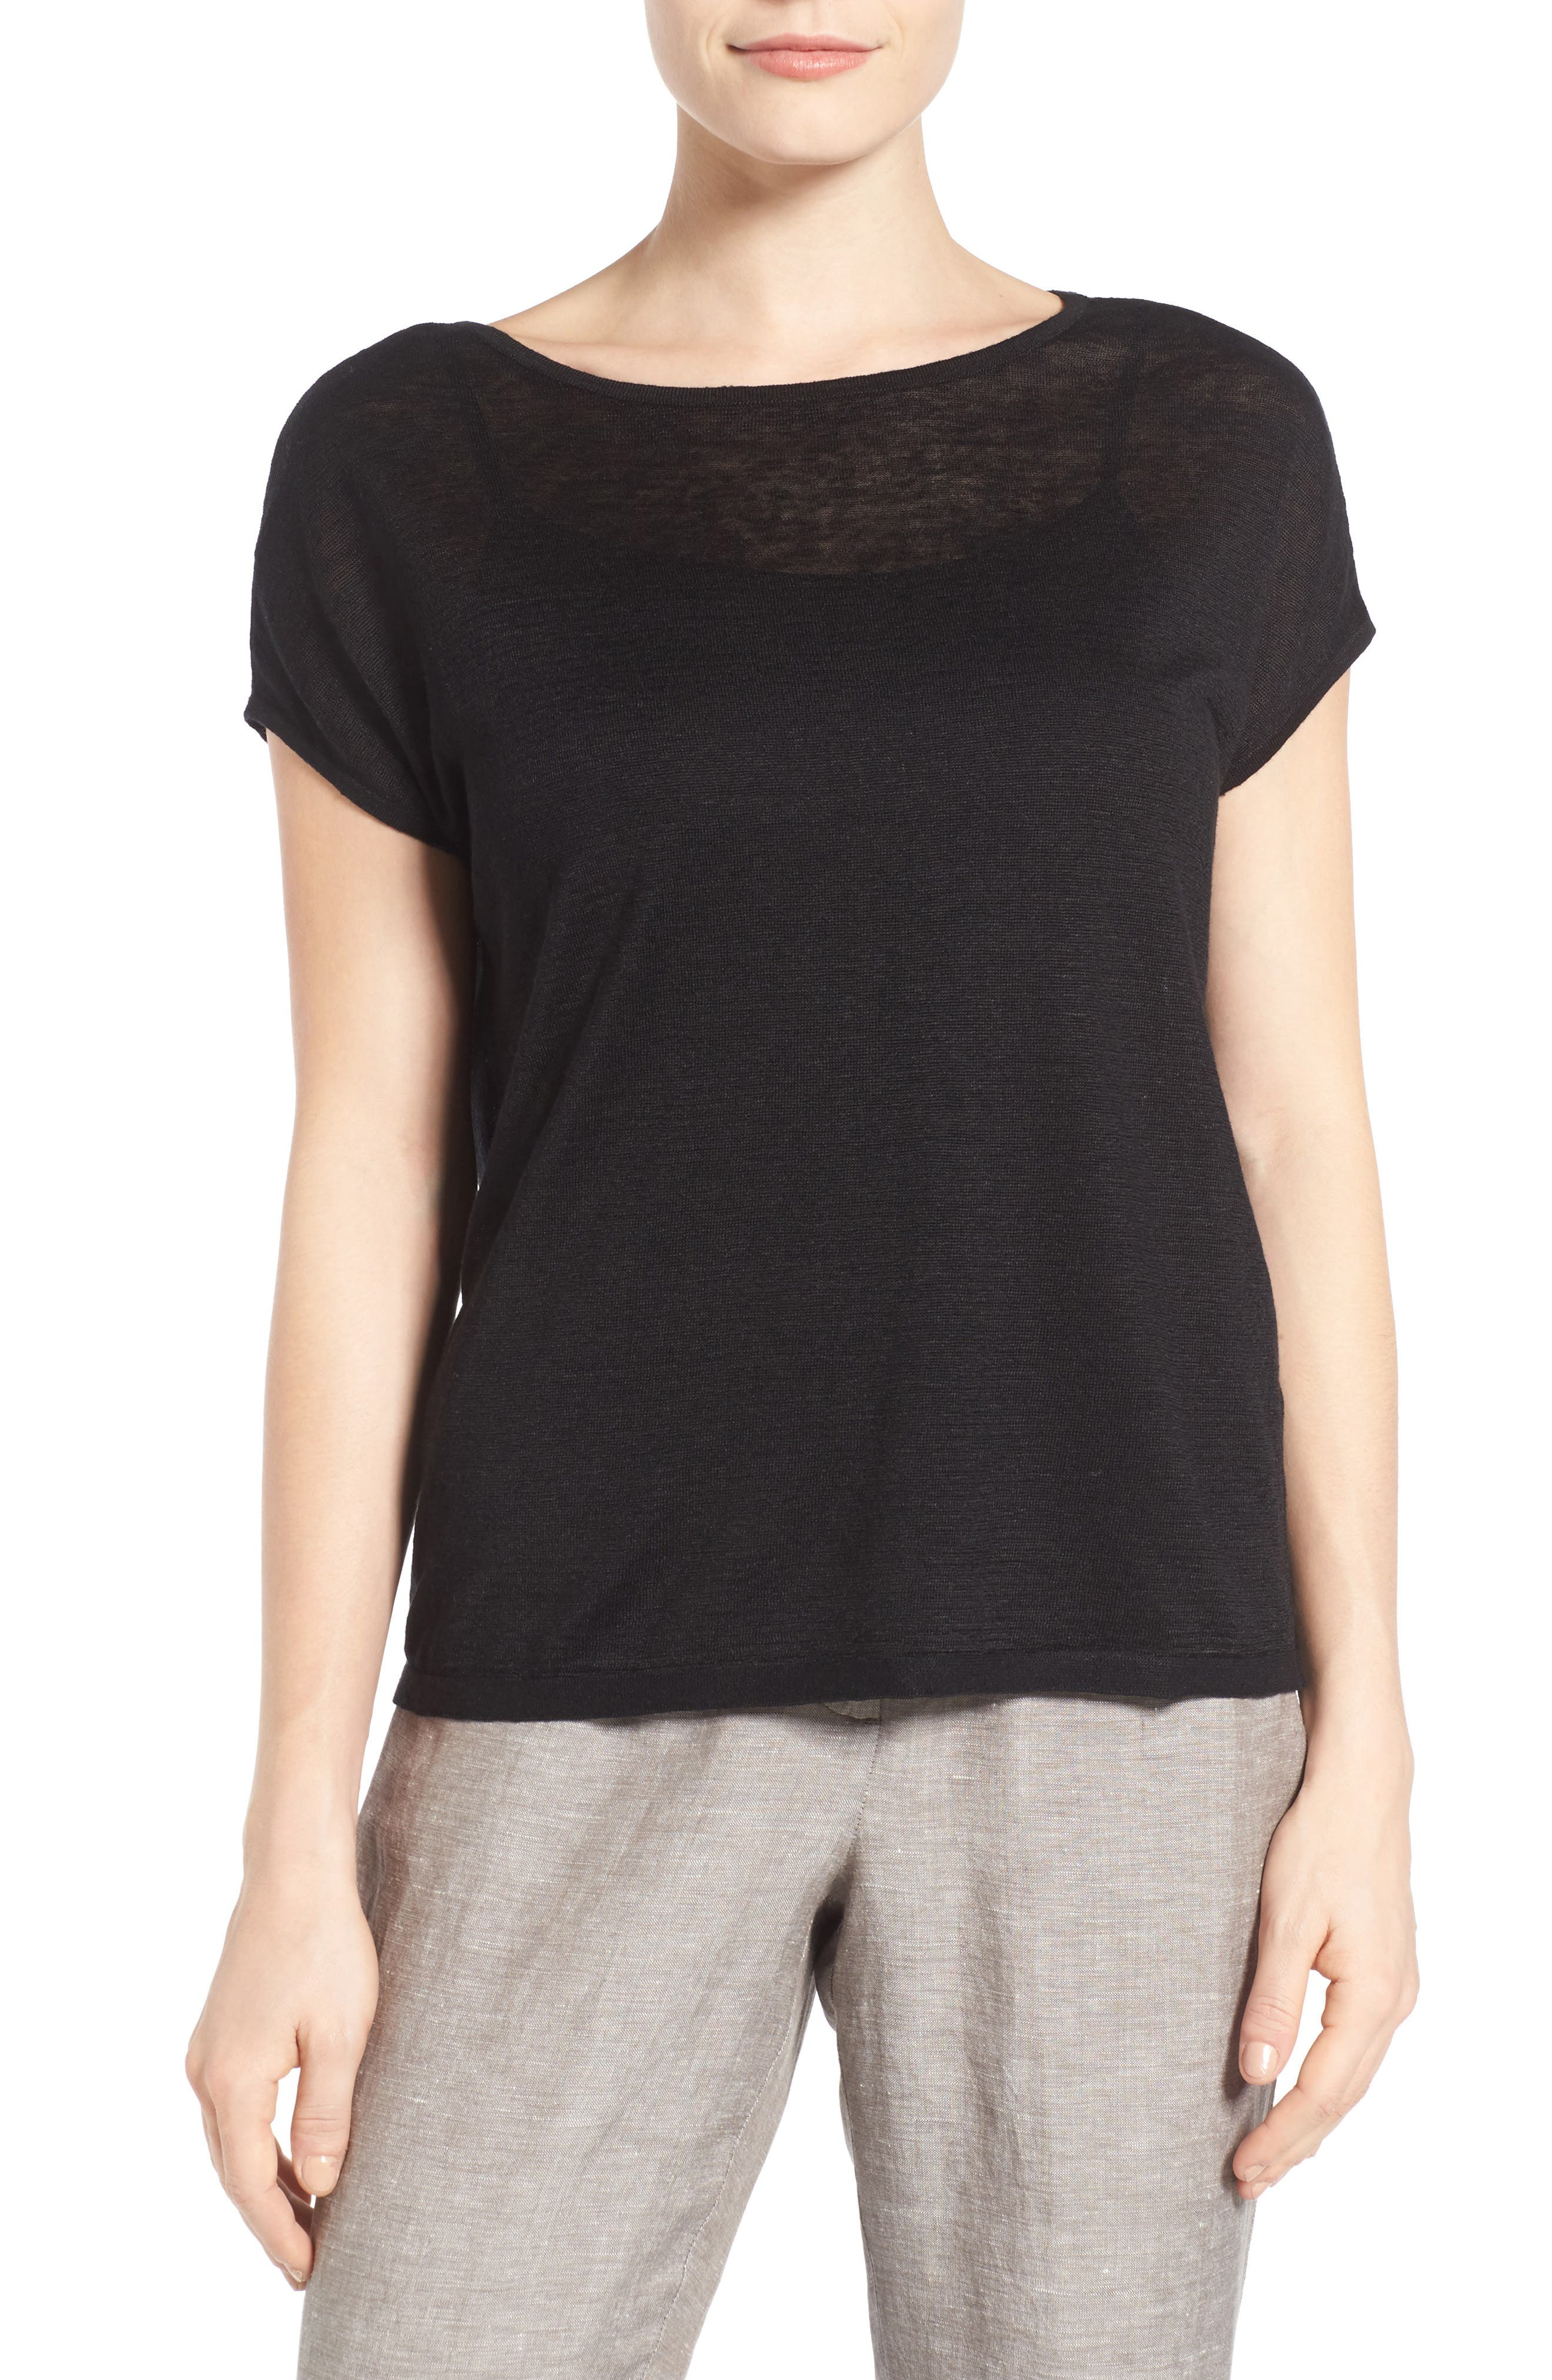 Everyday Tissue Weight Tee,                         Main,                         color, Black Onyx